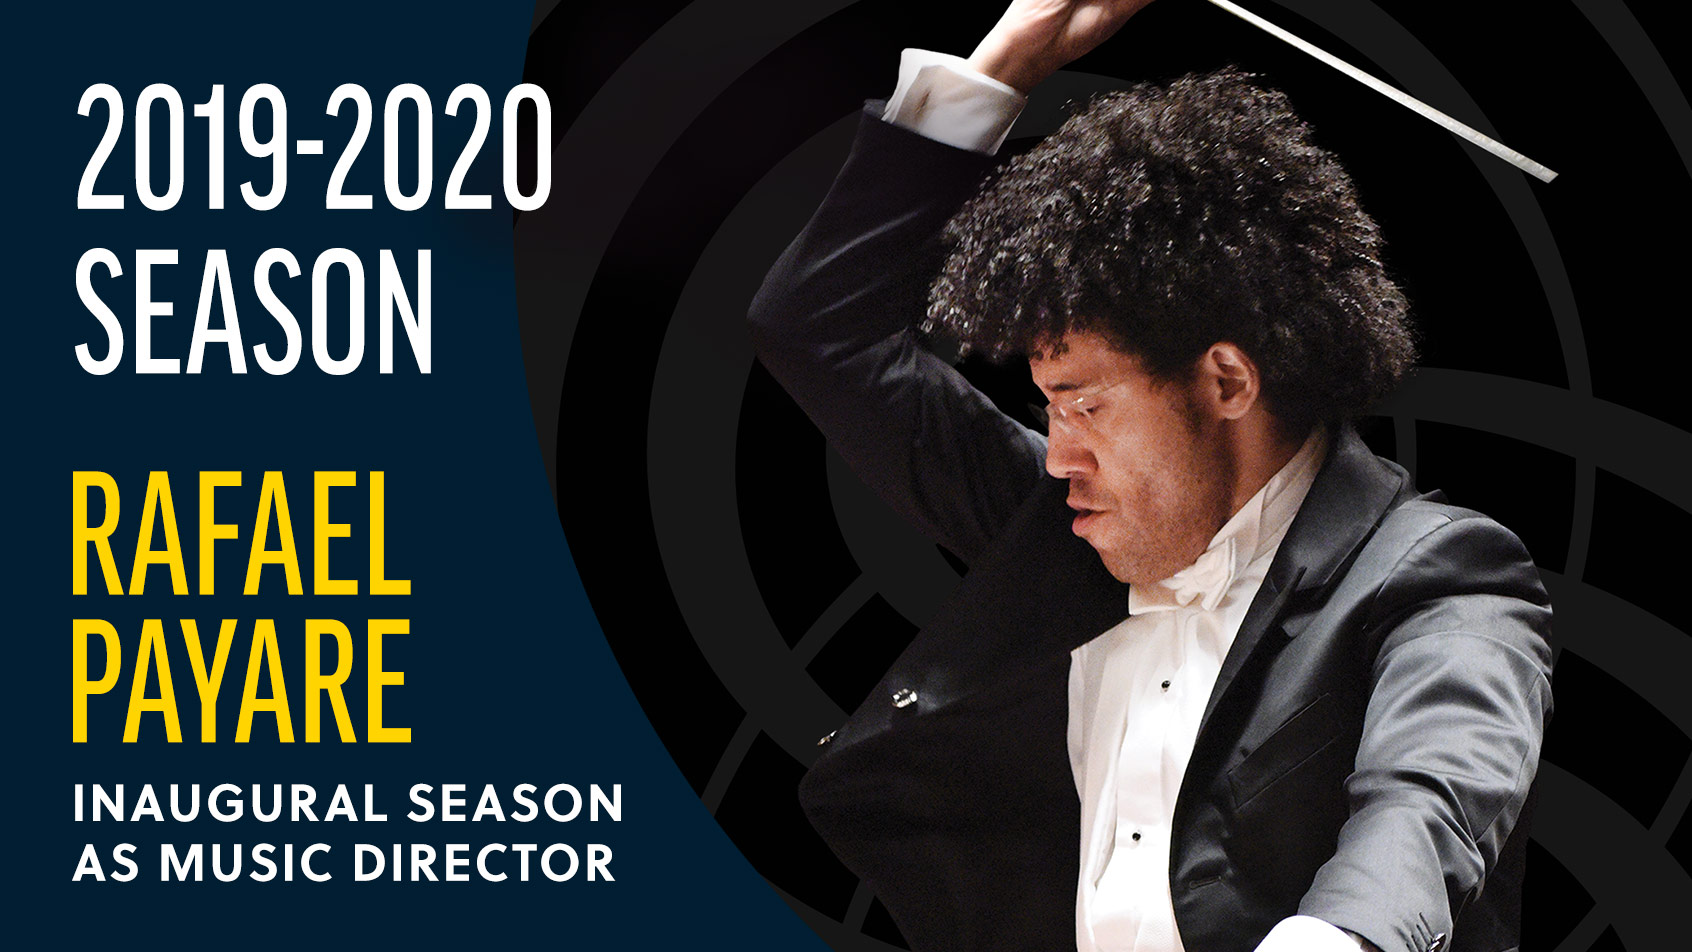 San Diego Symphony's 2019-20 Concert Series